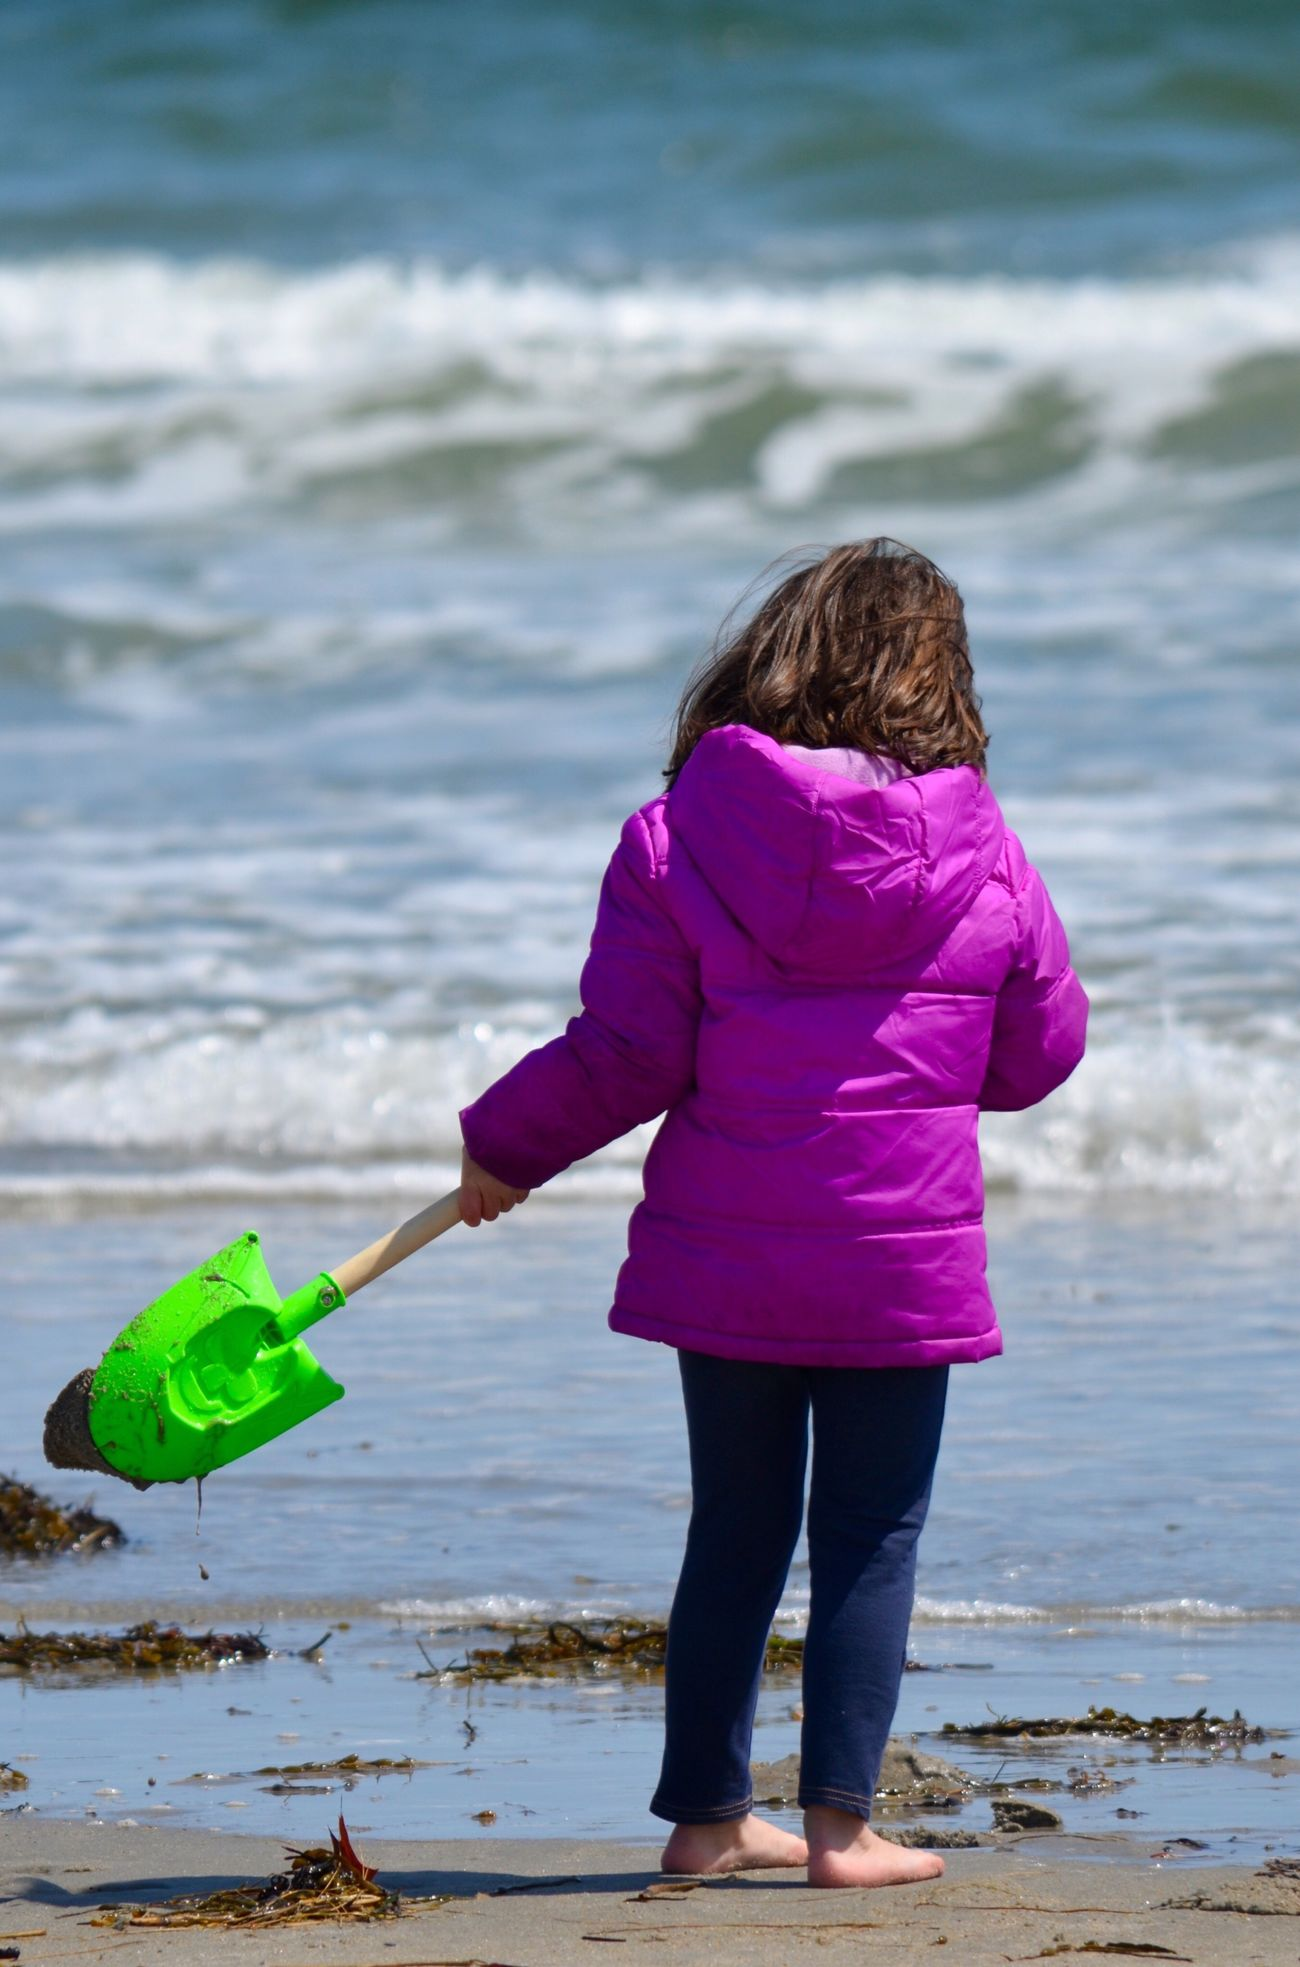 Water One Person Real People Childhood Full Length Sea Rear View Leisure Activity Girls Lifestyles Outdoors Nature Standing Beach Day Beauty In Nature People Beach Fun Ocean Photography Childhood Fun In The Moment Barefoot Digging In Sand